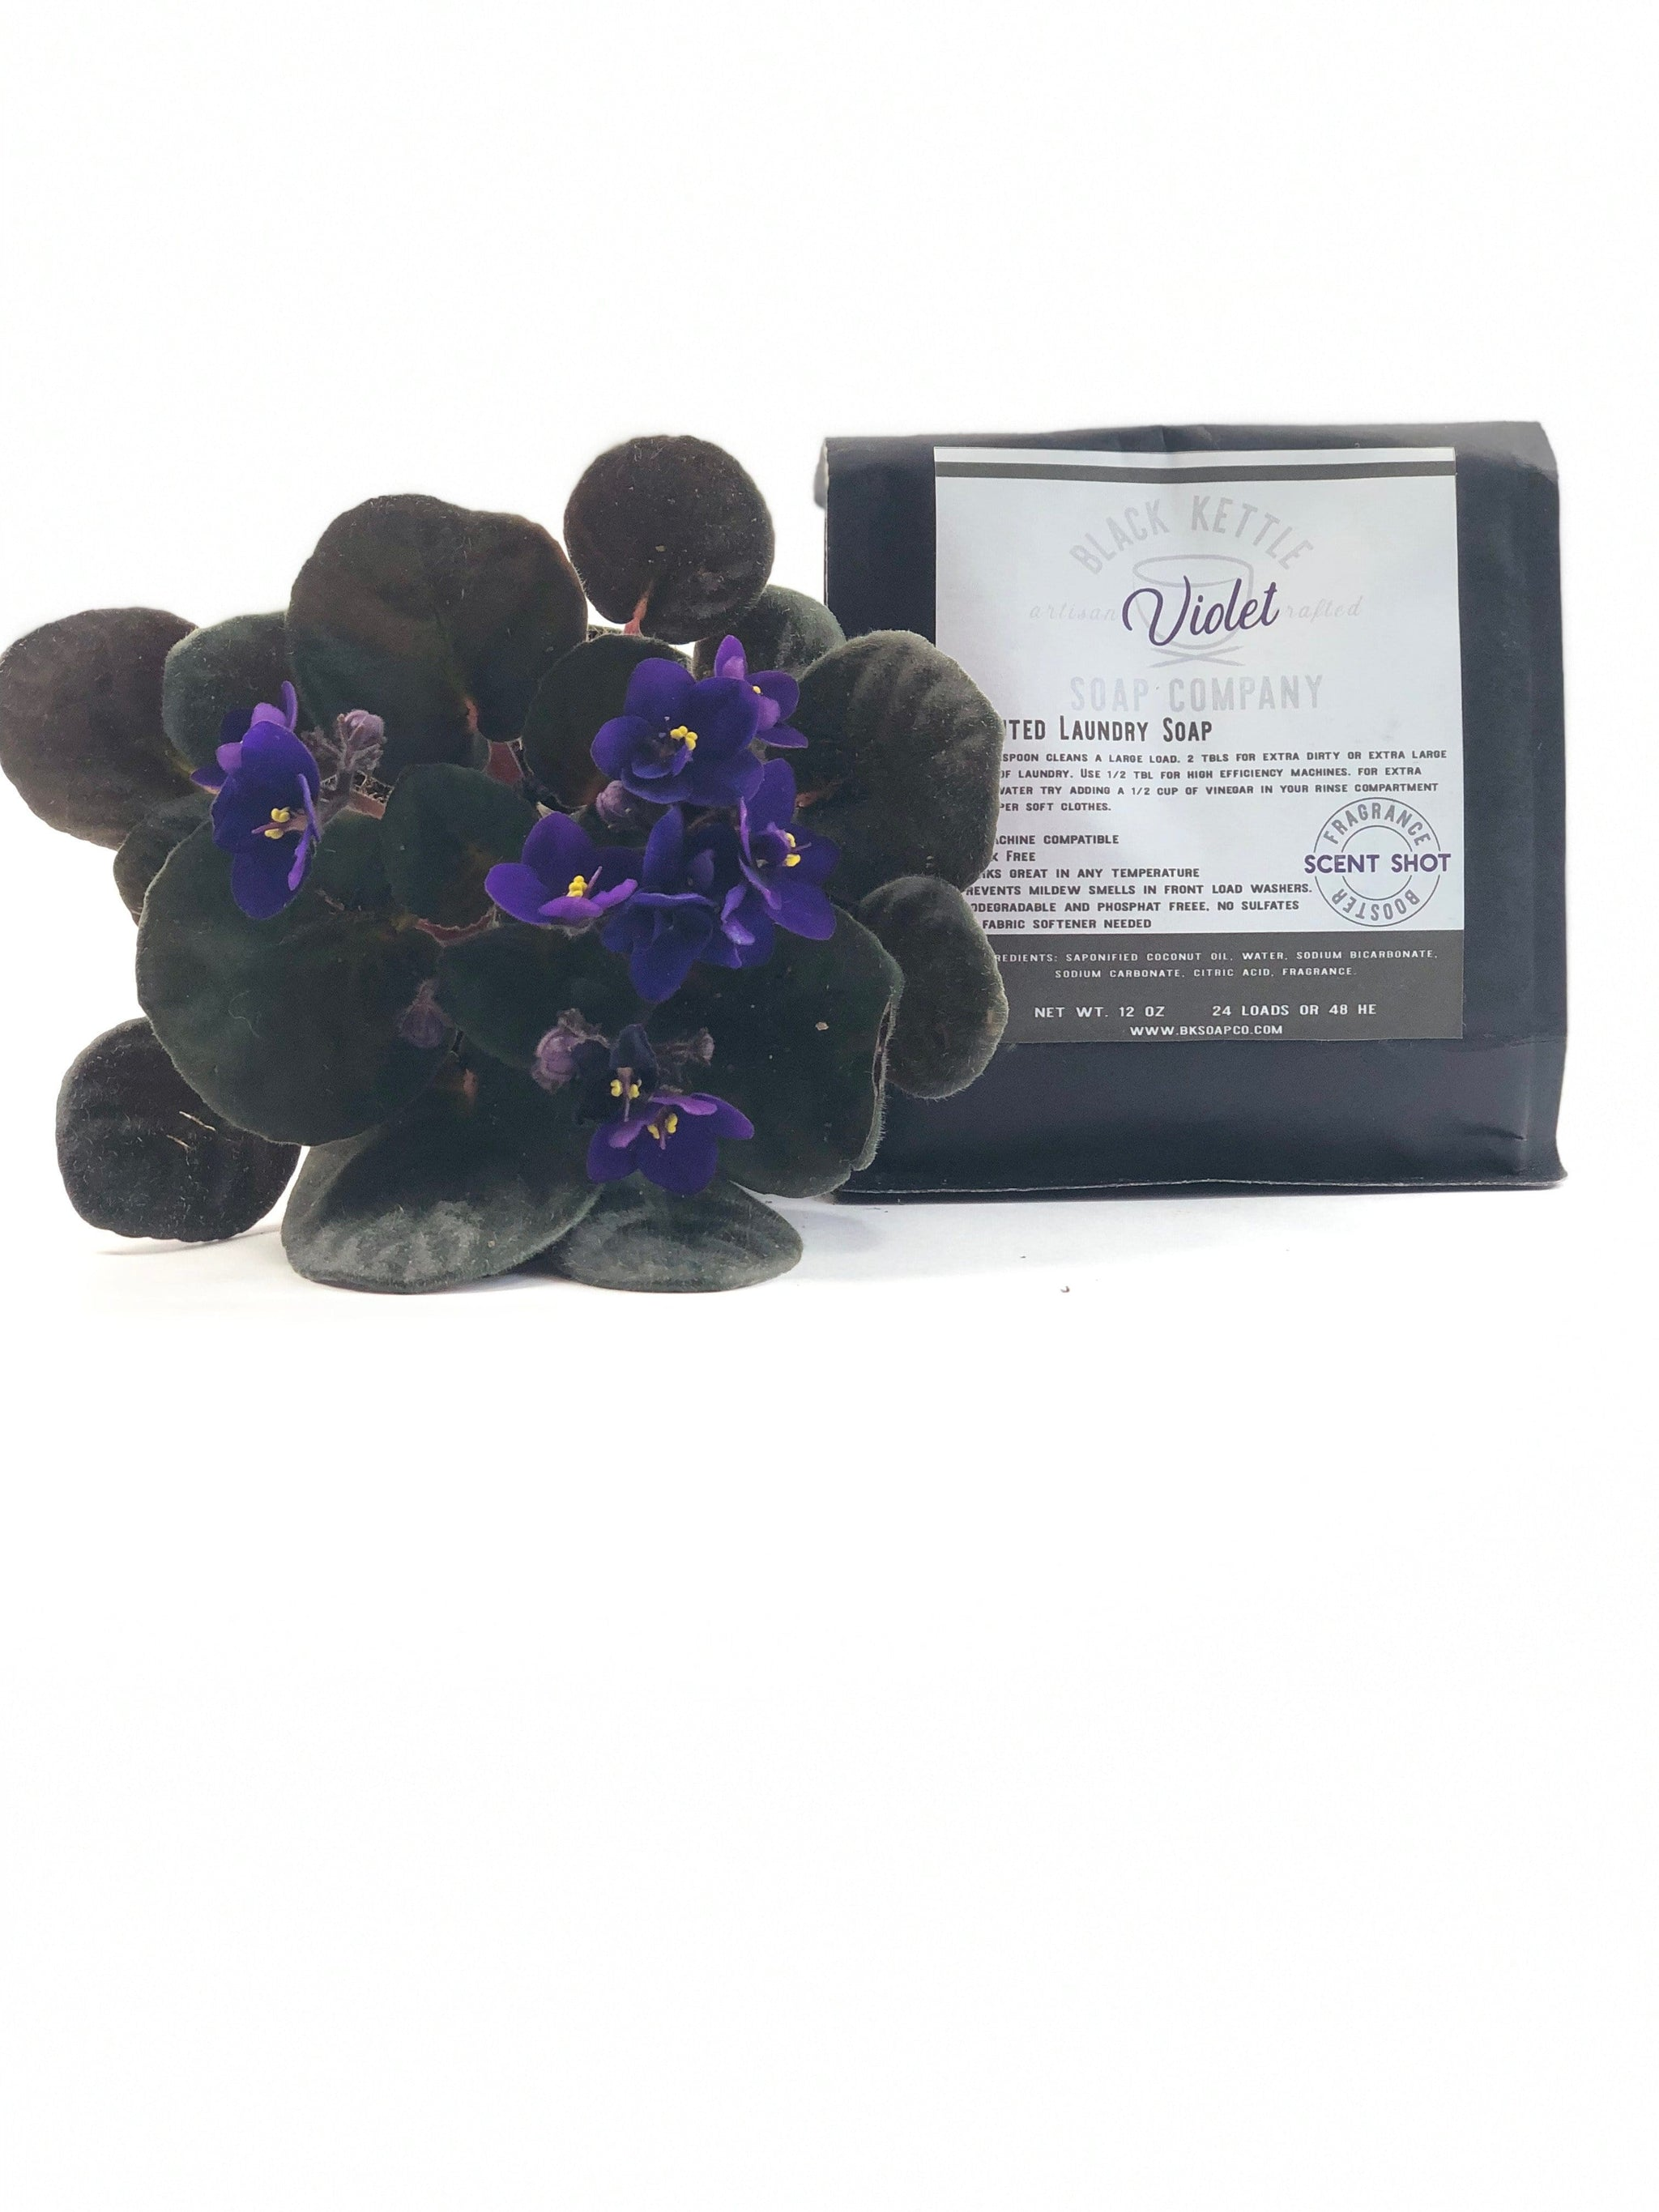 Natural Violet Laundry Soap